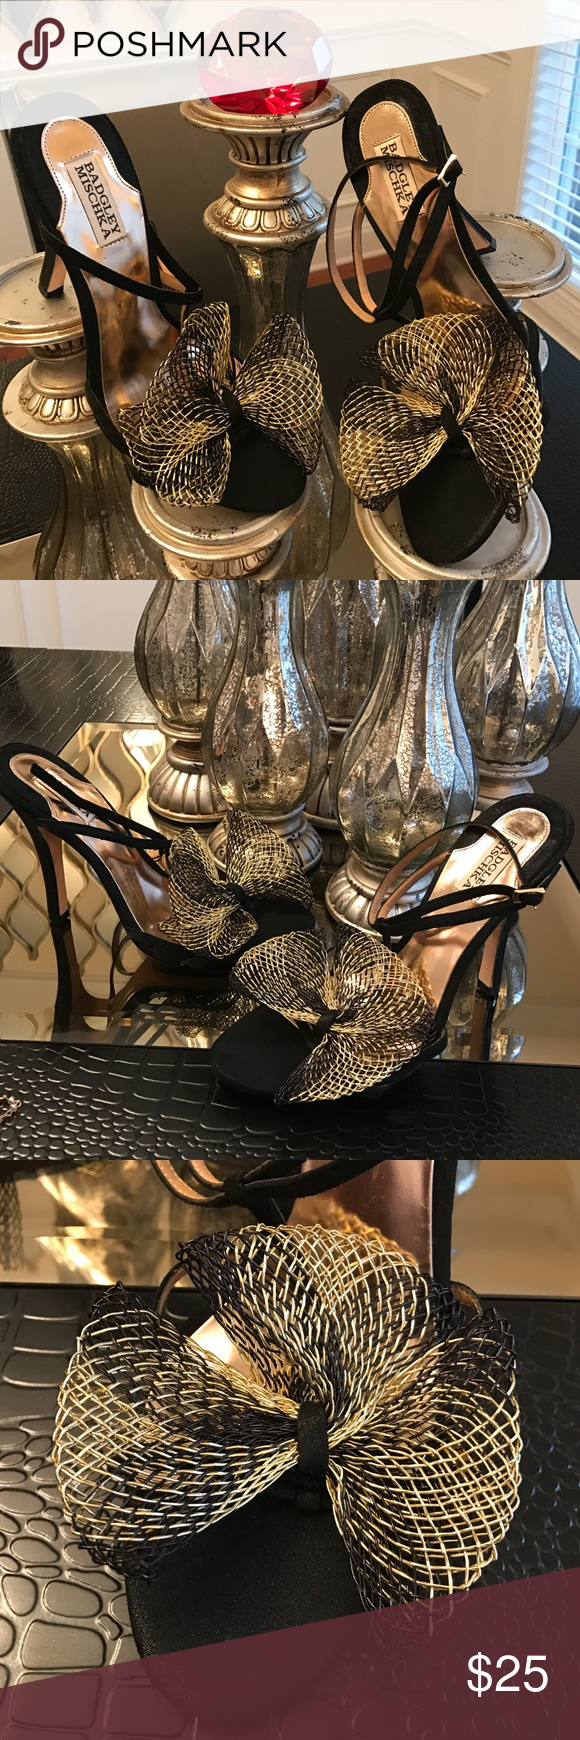 Badgley mischka sz 10 heels never worn If these babies don't scream sex in the city I don't know what does, they are adorable and I'm sure they would be Carrie approved. Badgley mischka heels sz 10 never worn. Badgley Mischka Shoes Heels